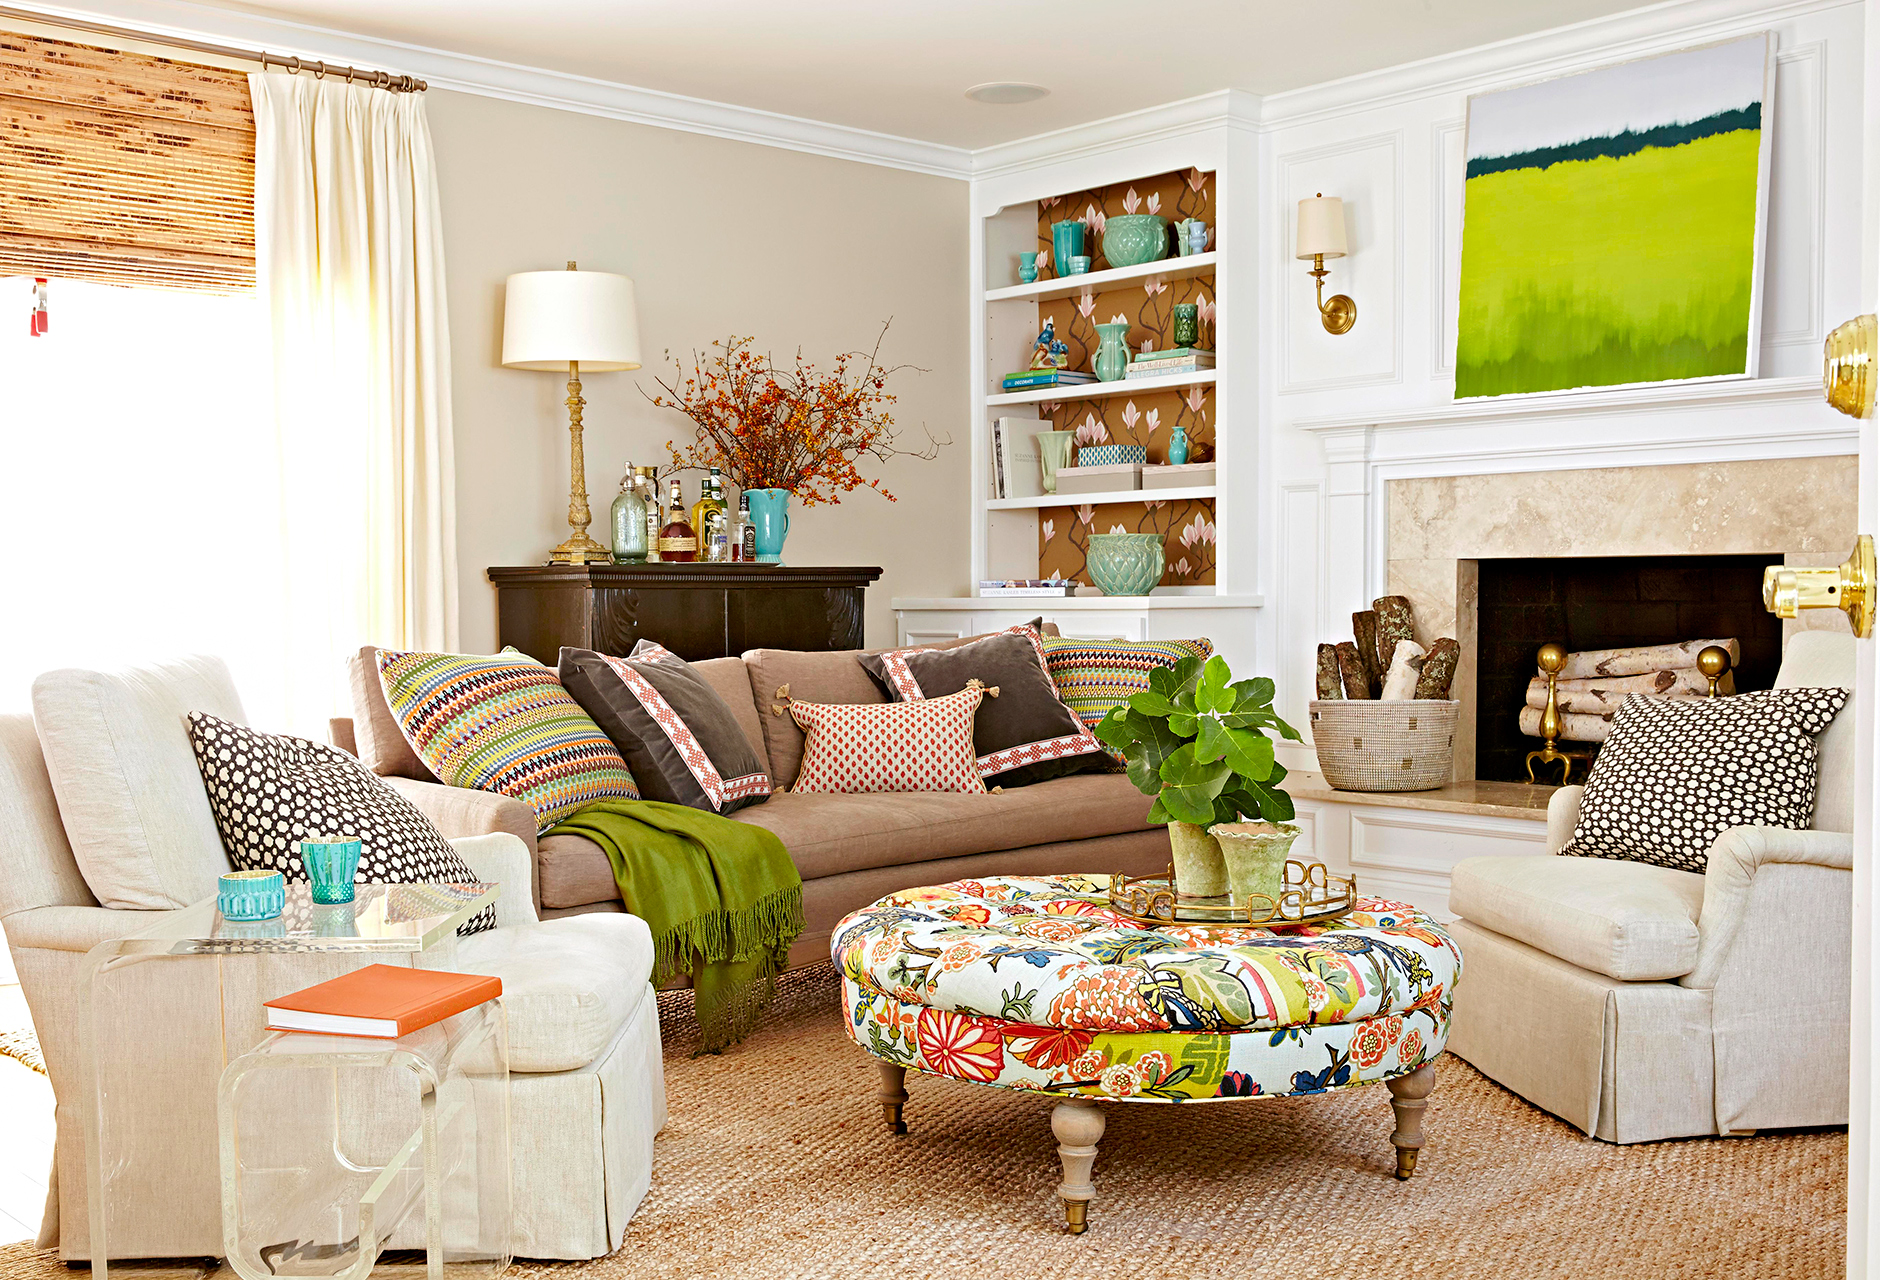 Furniture-Arranging Mistakes and How to Fix Them  Better Homes